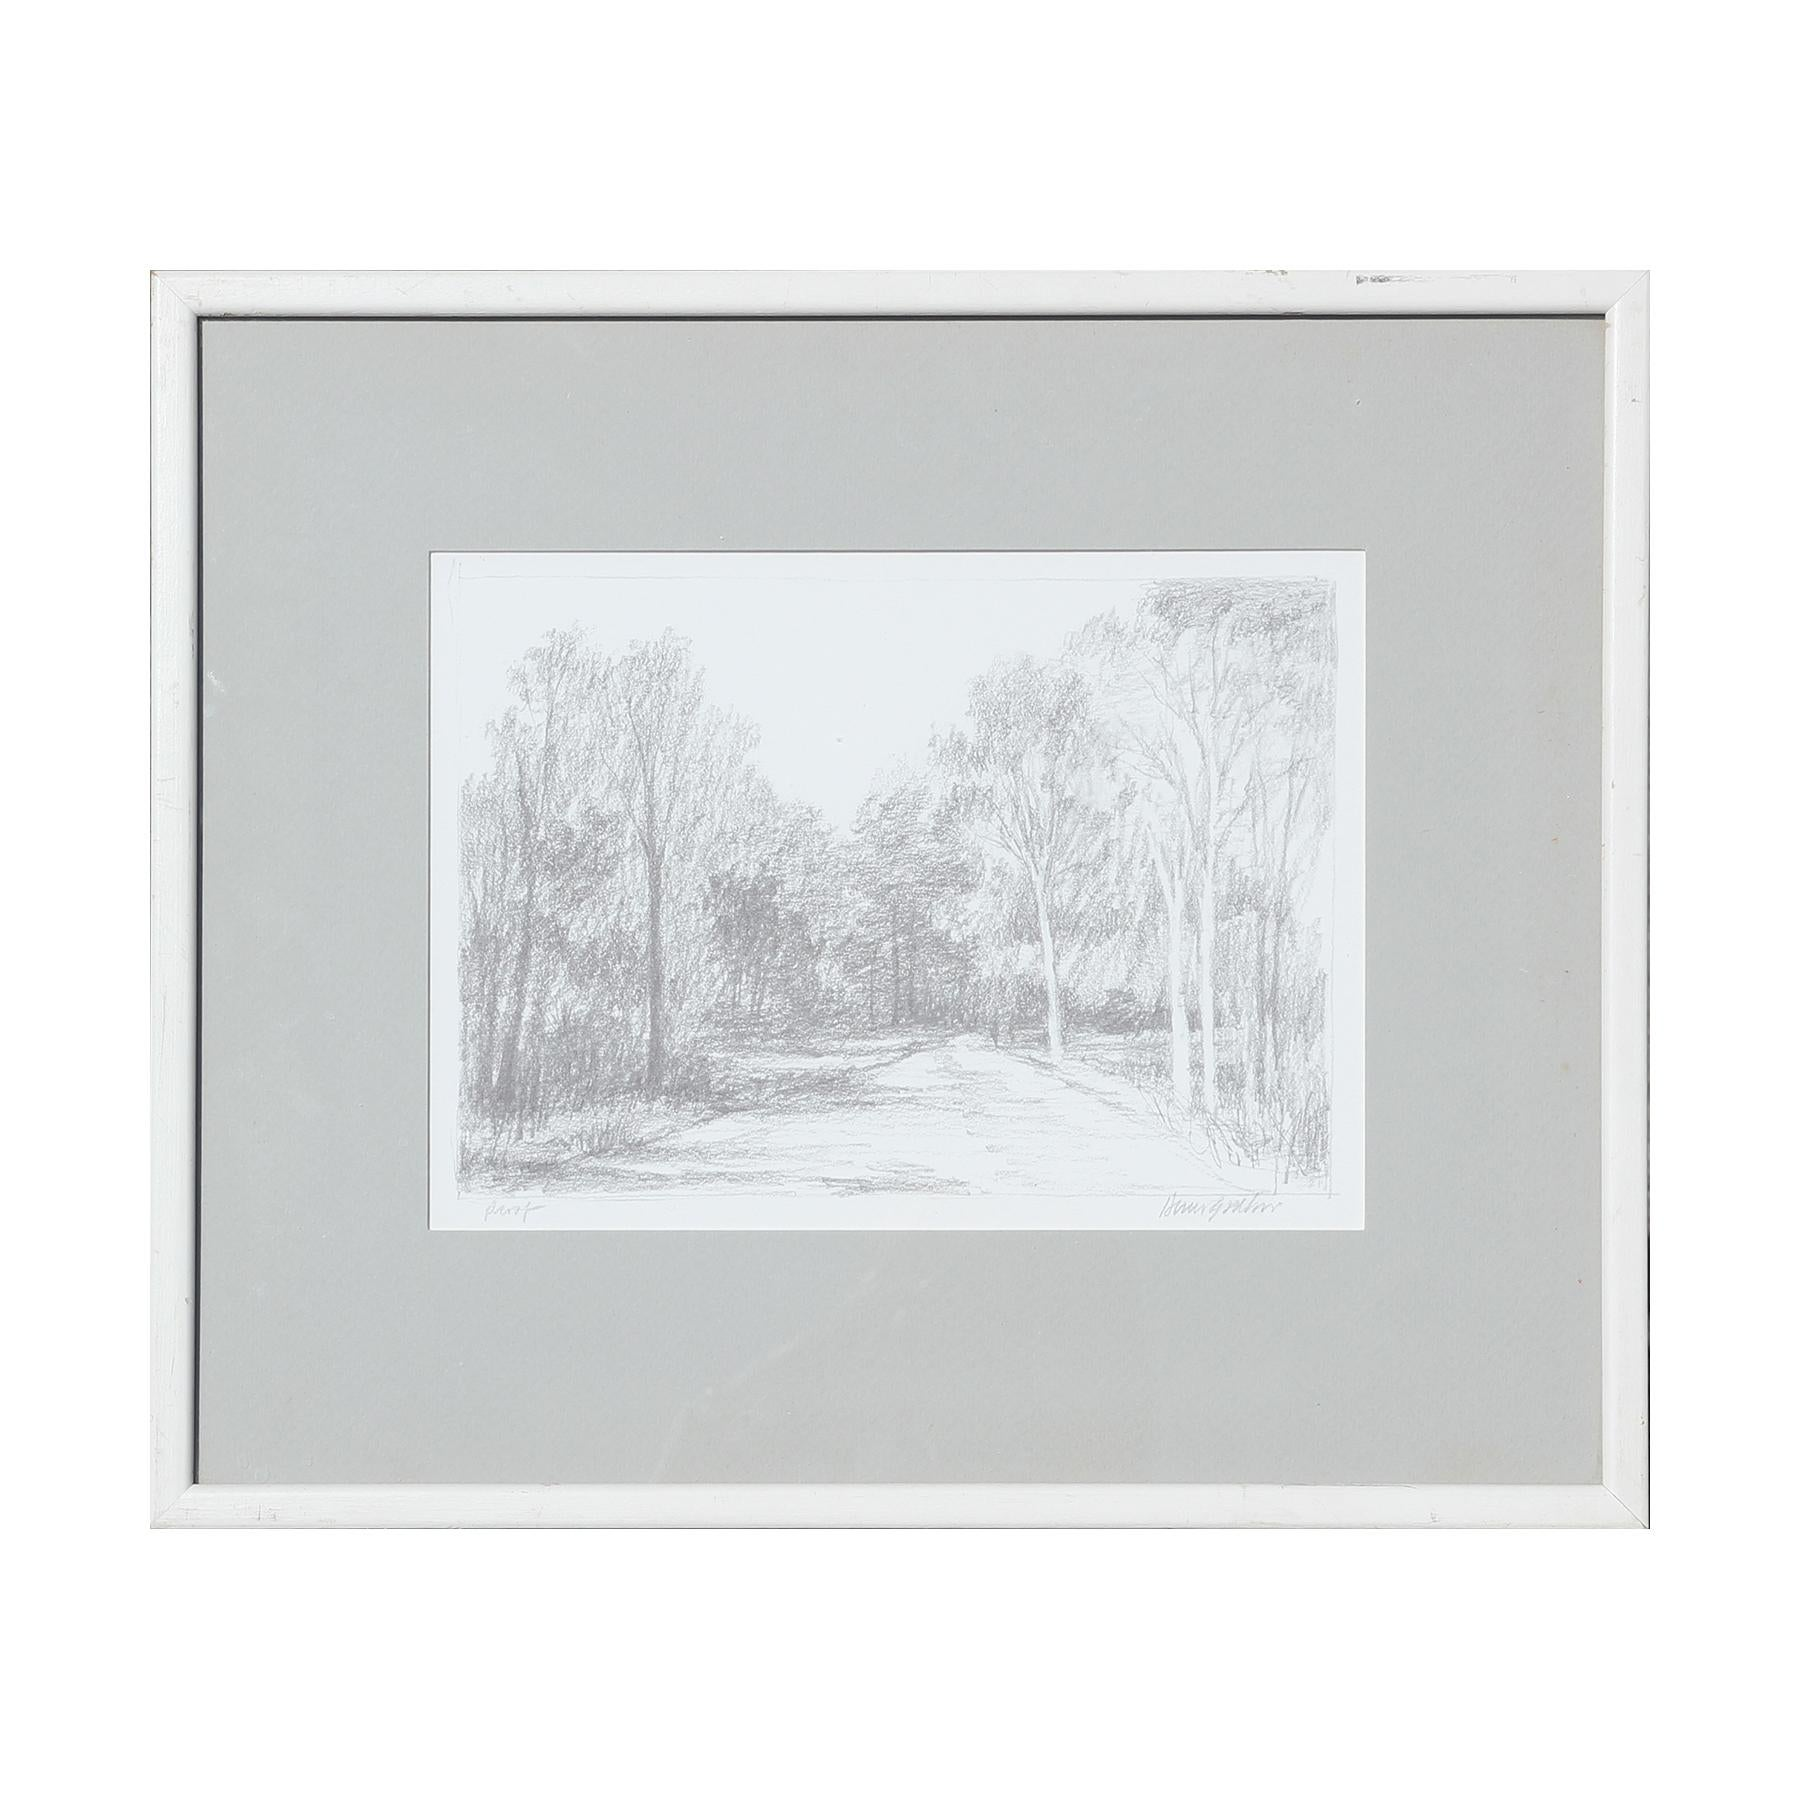 Naturalistic Grey Forest Path Photo Print Proof of Abstract Pencil Drawing